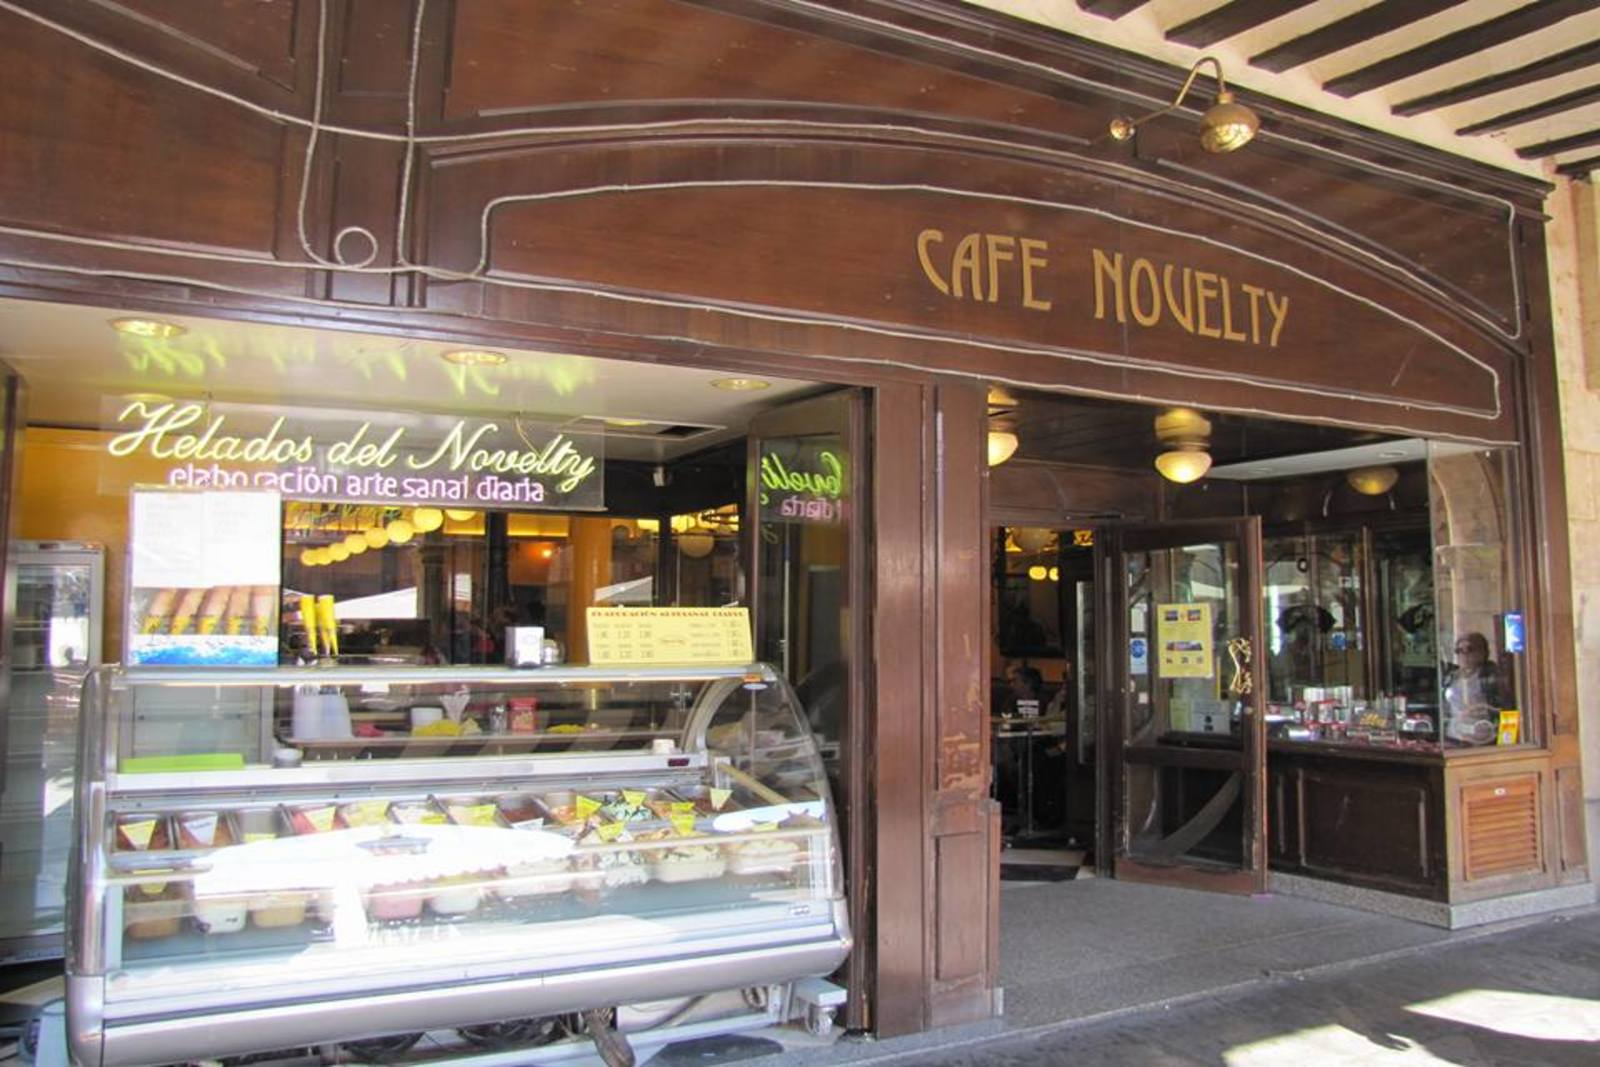 CAFE NOVELTY